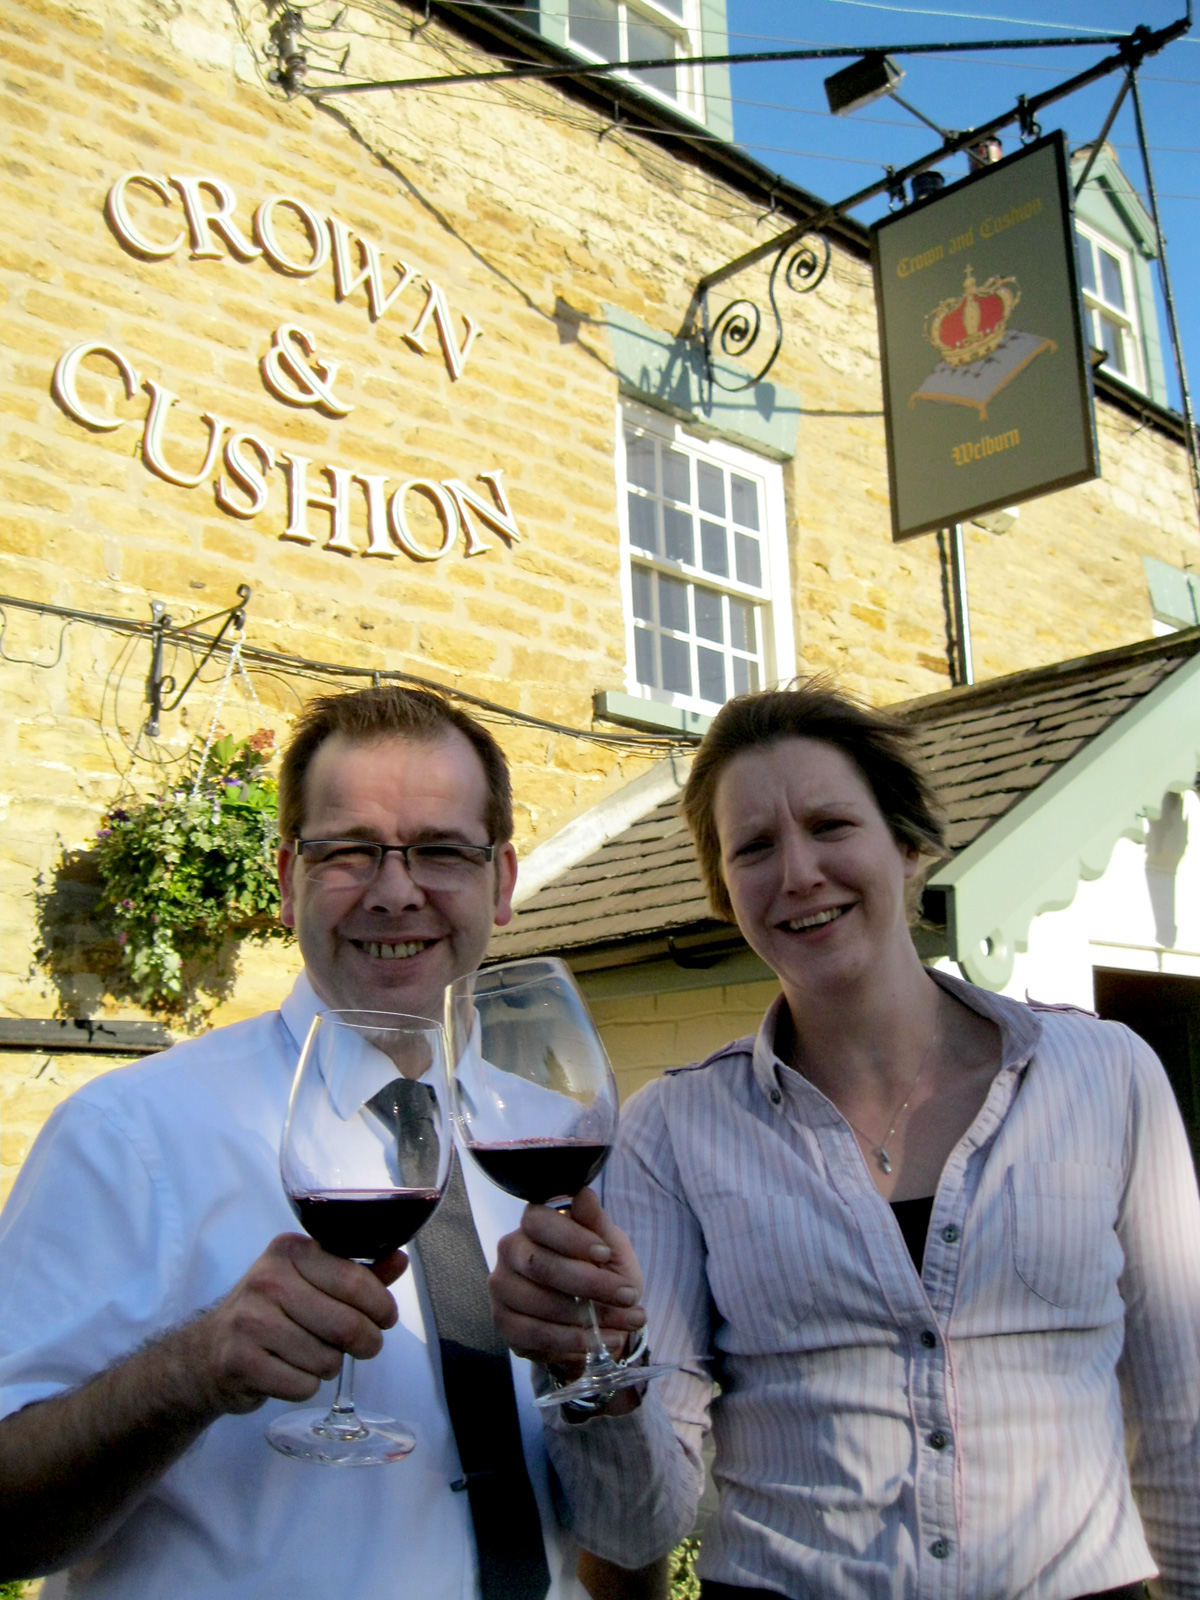 John Glover, general manager  of the Crown and Cushion,  and Karen Metcalfe, of Provenance Inns